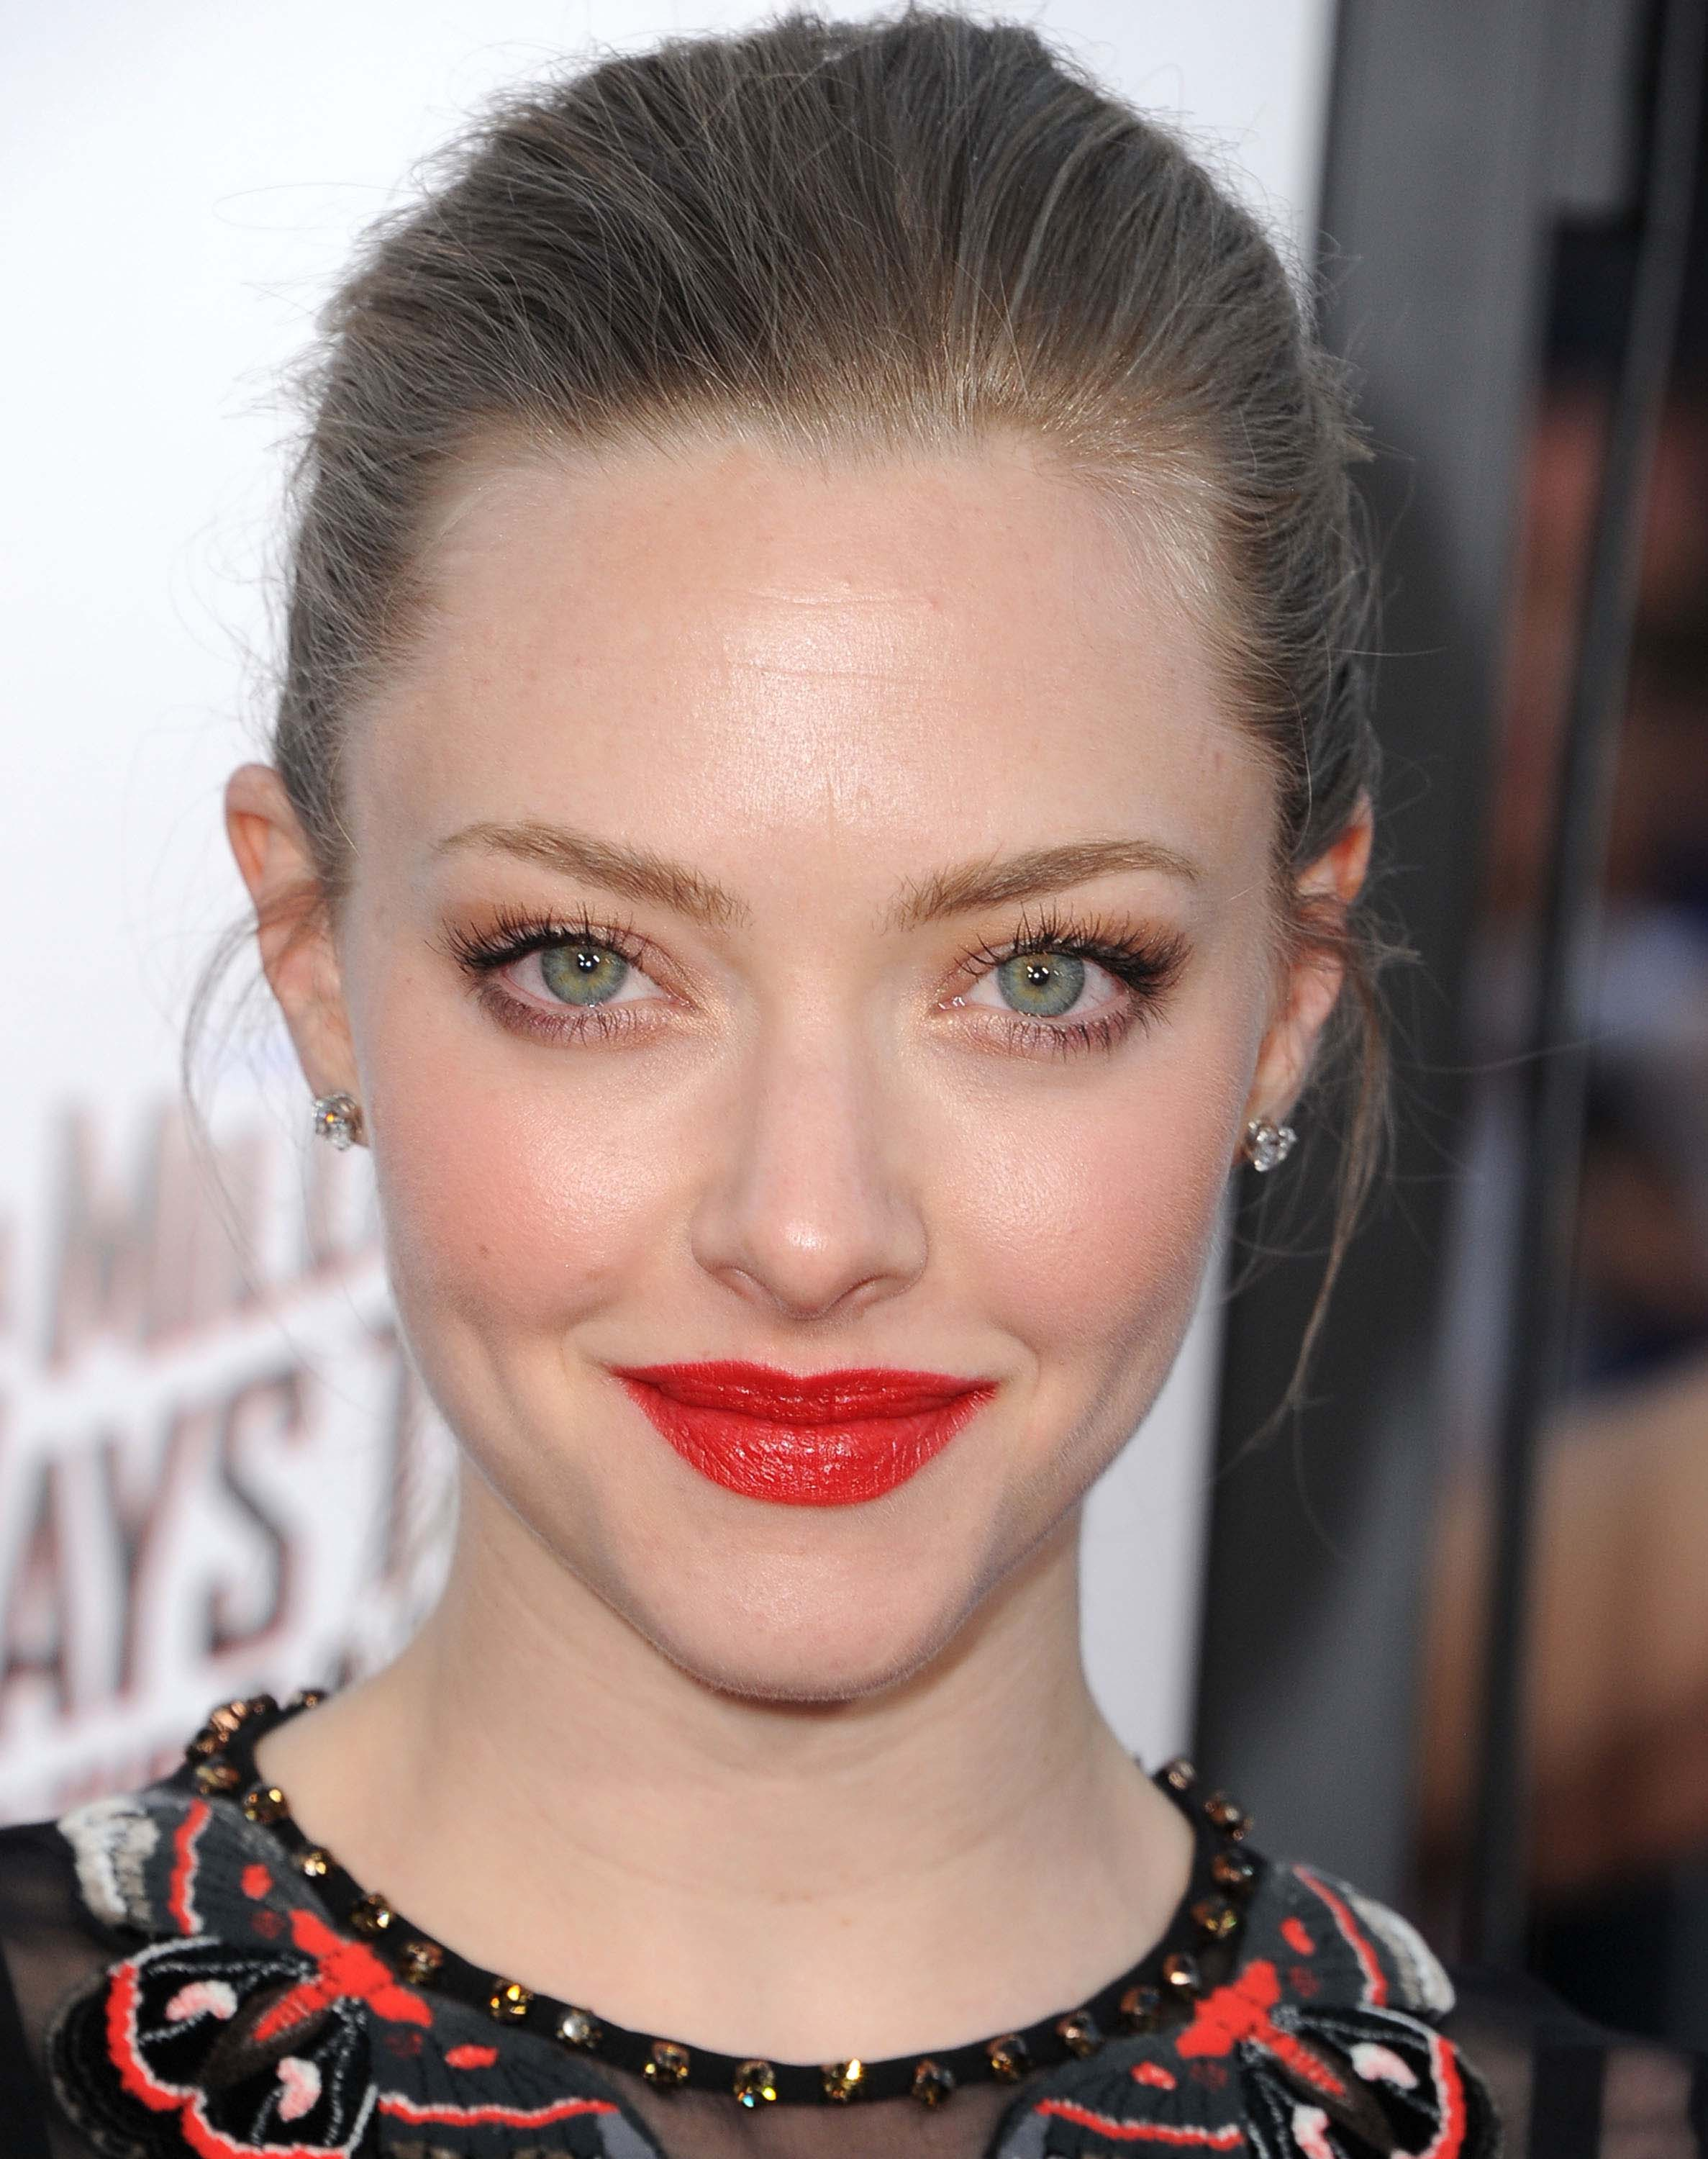 """WESTWOOD, CA - MAY 15:  Amanda Seyfried arrives at the """"A Million Ways To Die In The West"""" - Los Angeles Premiere at Regency Village Theatre on May 15, 2014 in Westwood, California.  (Photo by Steve Granitz/WireImage)"""